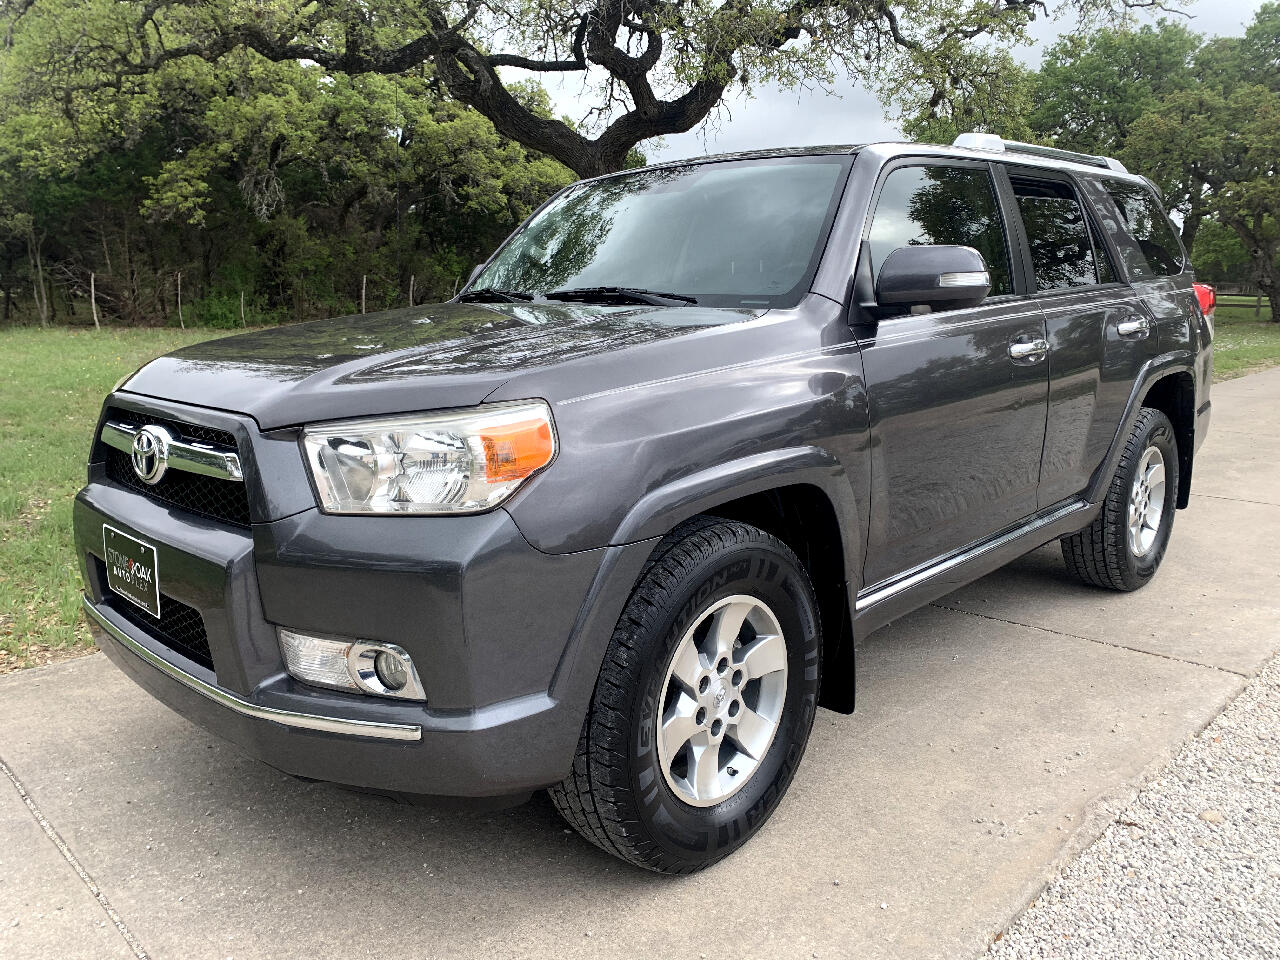 2013 Toyota 4Runner RWD 4dr V6 Limited (Natl)